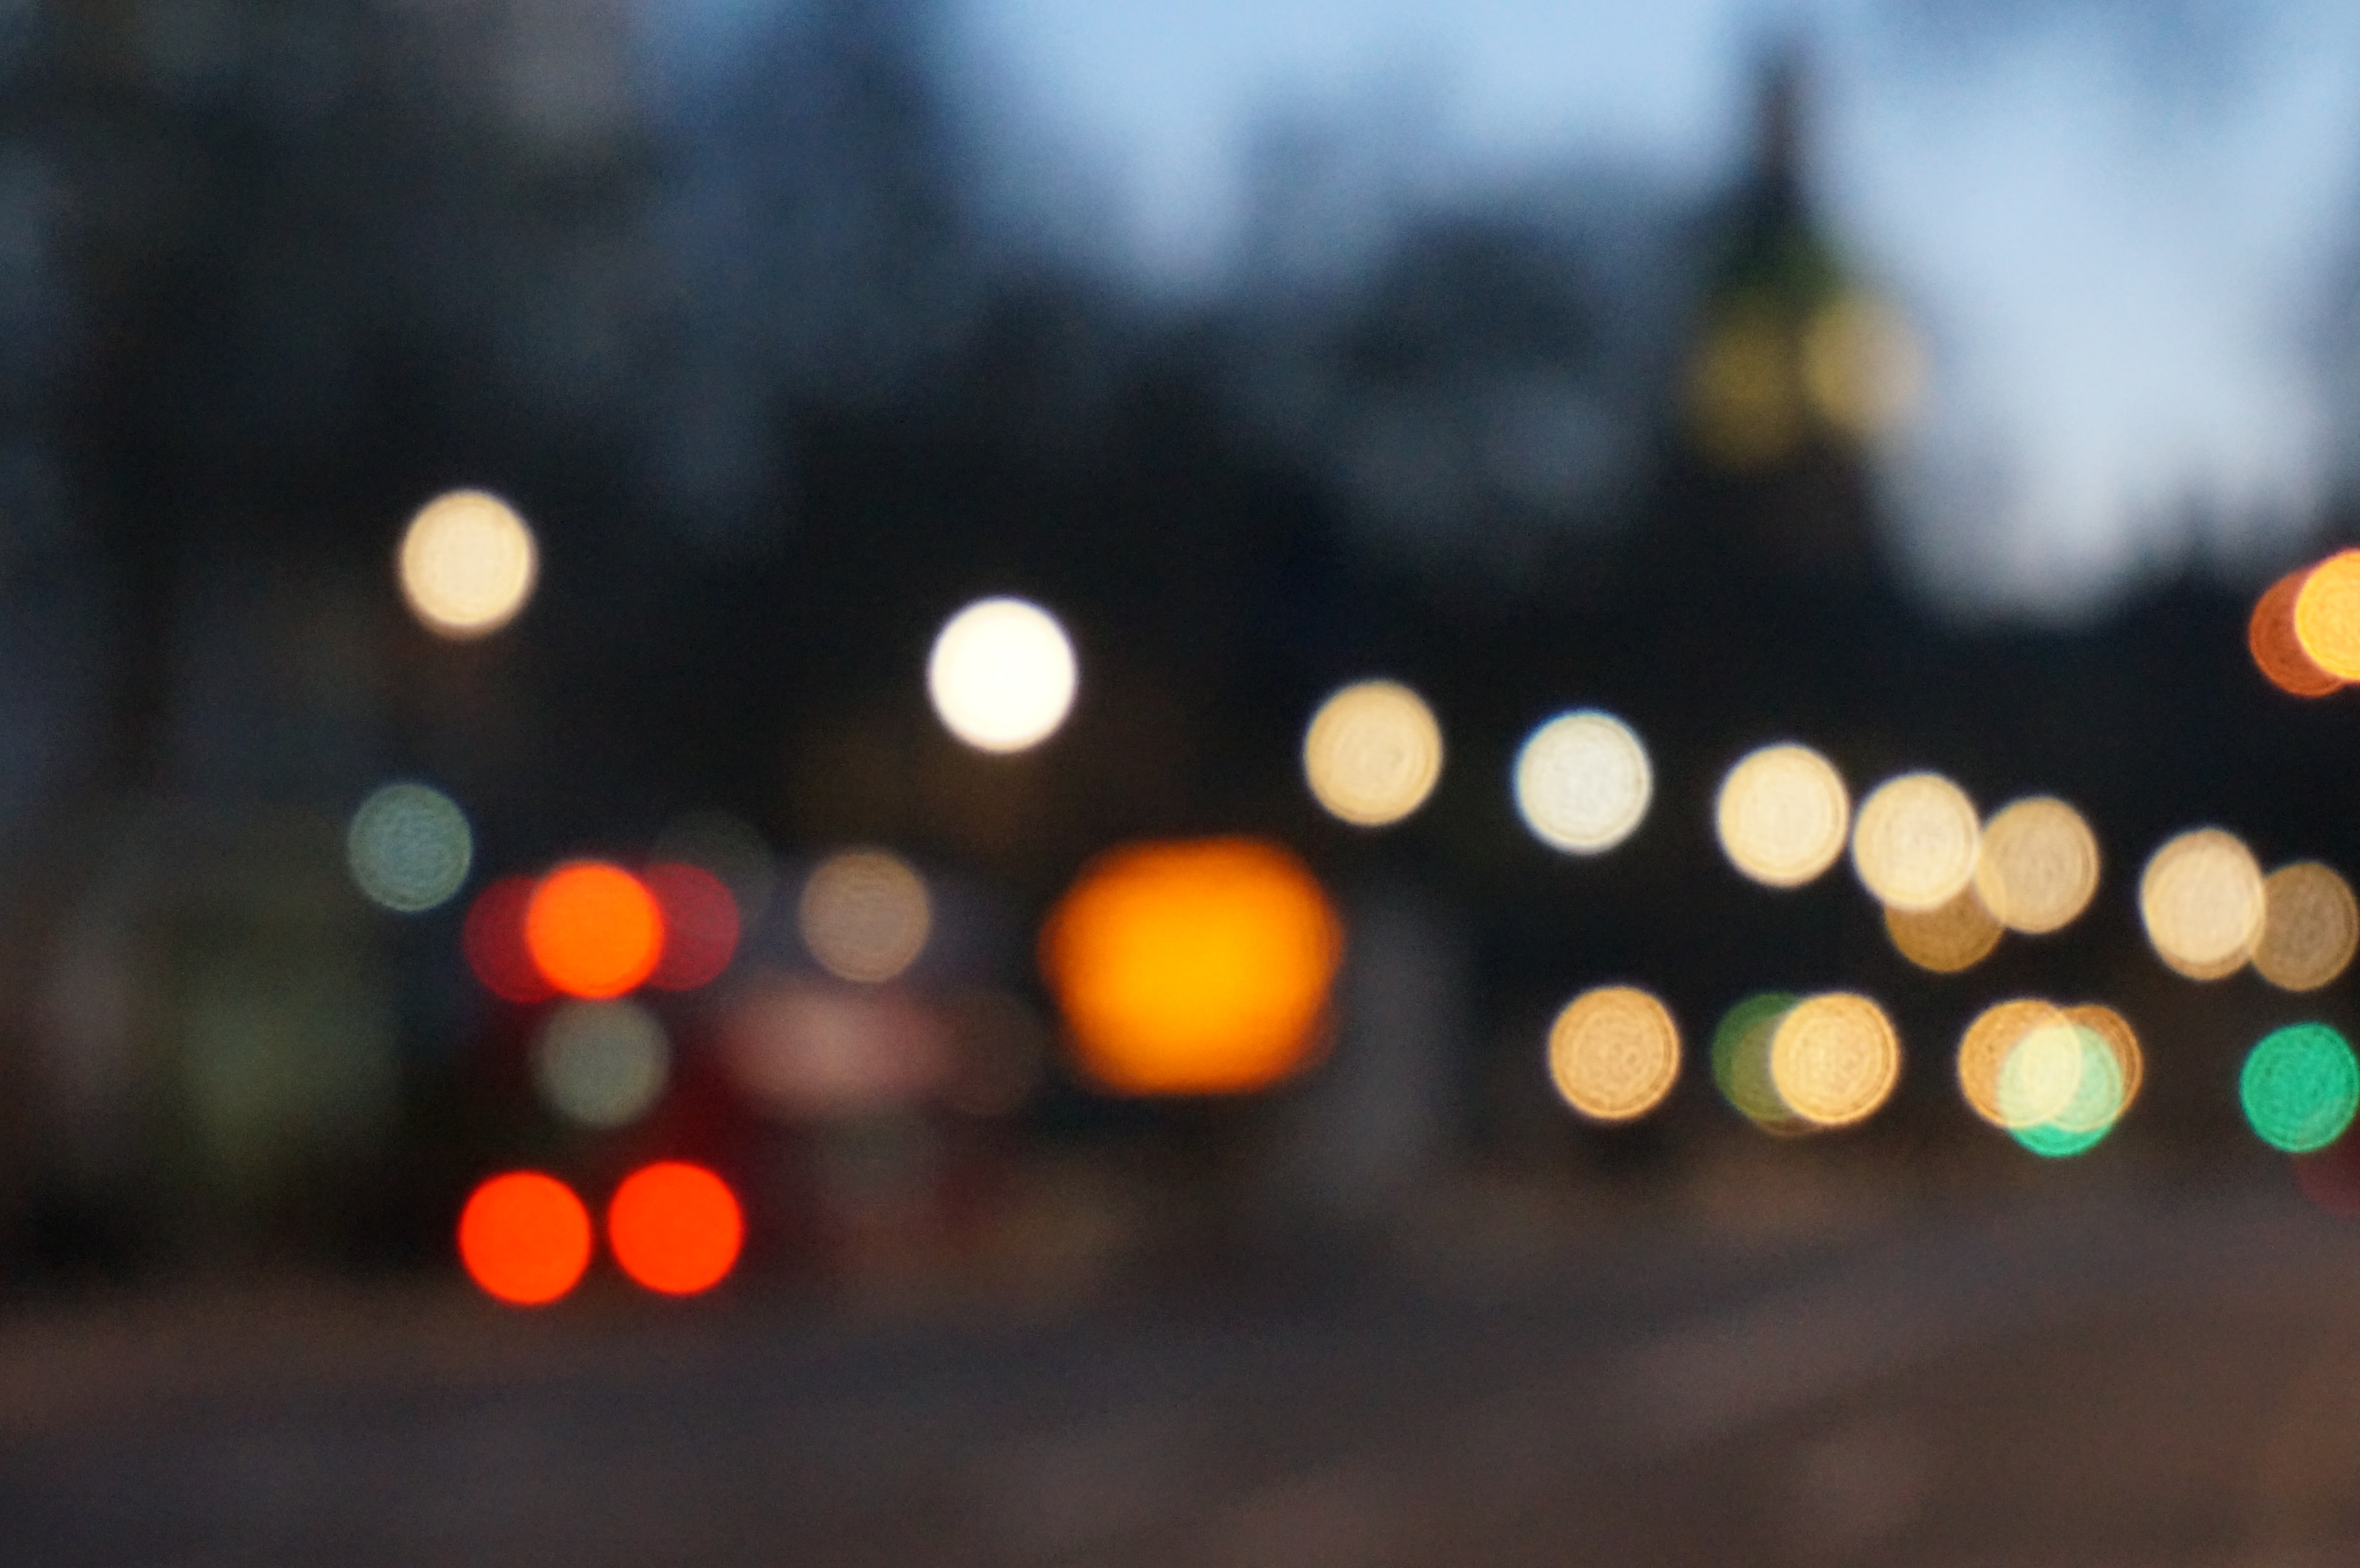 An abstract image created using street lights and a bokeh effect